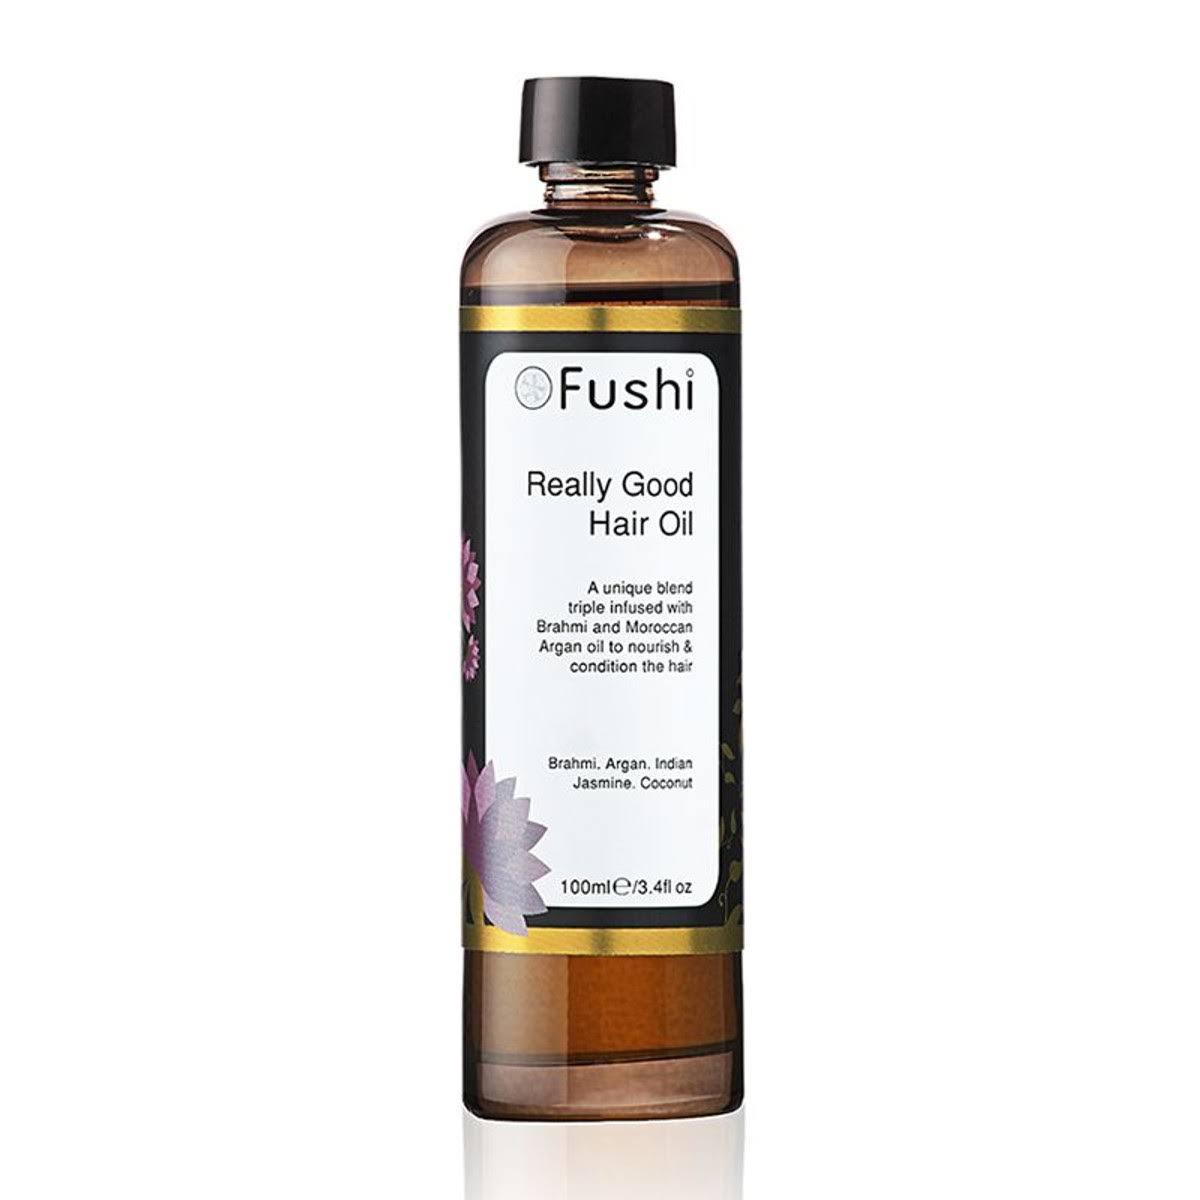 Fushi Really Good Hair Oil - 100ml